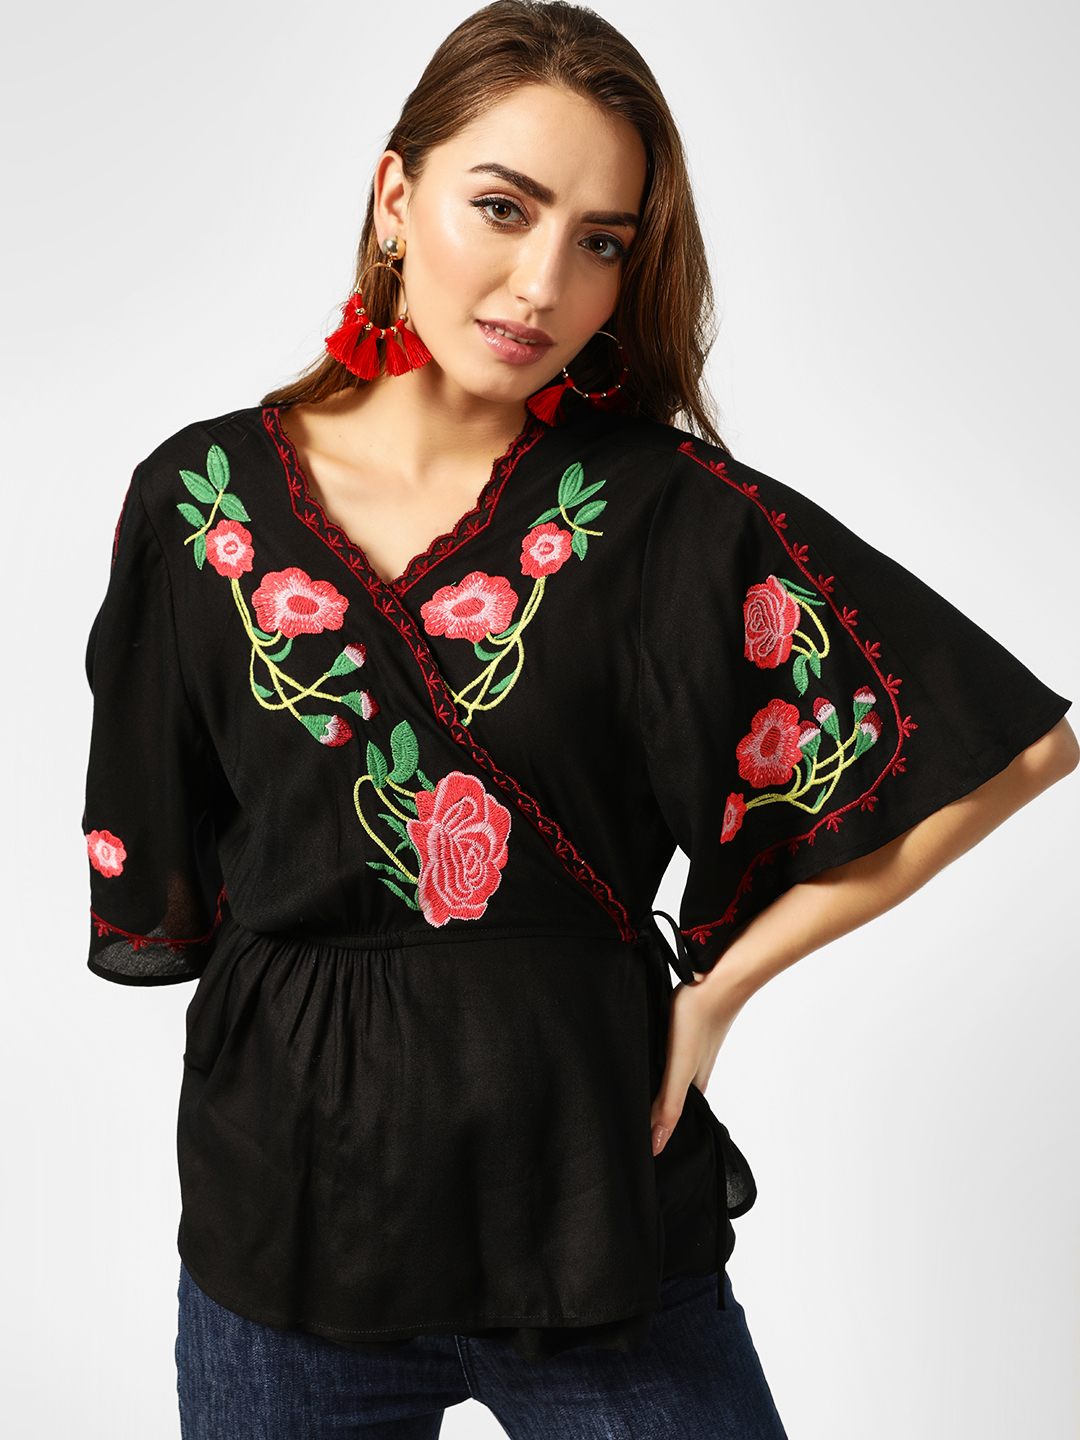 Kisscoast Black Floral Embroidered Wrap Top 1